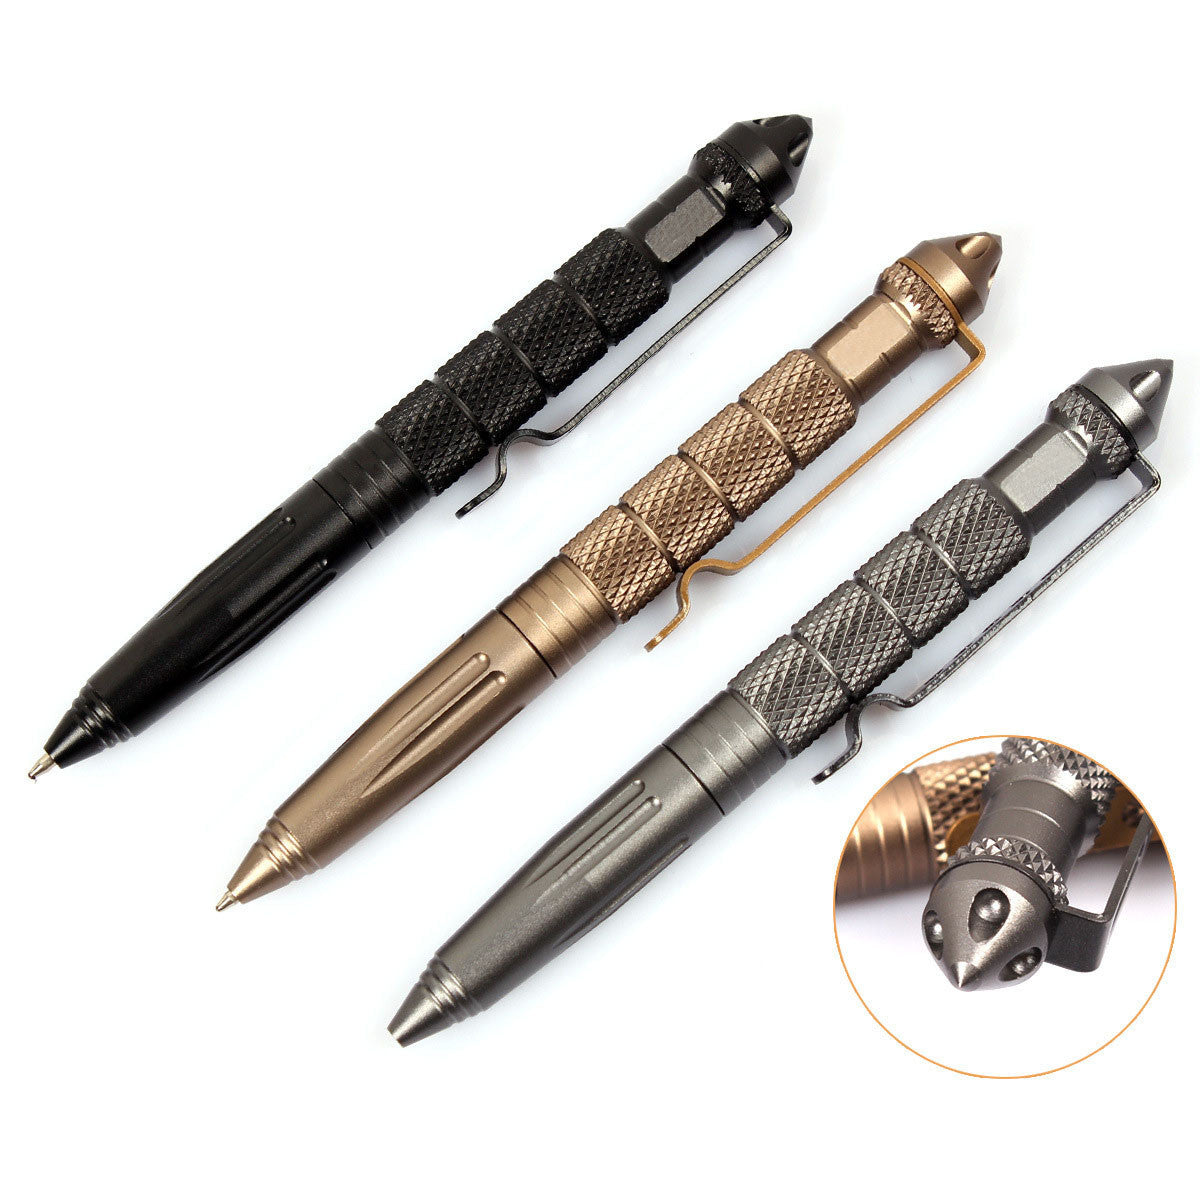 Deluxe Tactical Survival Pen